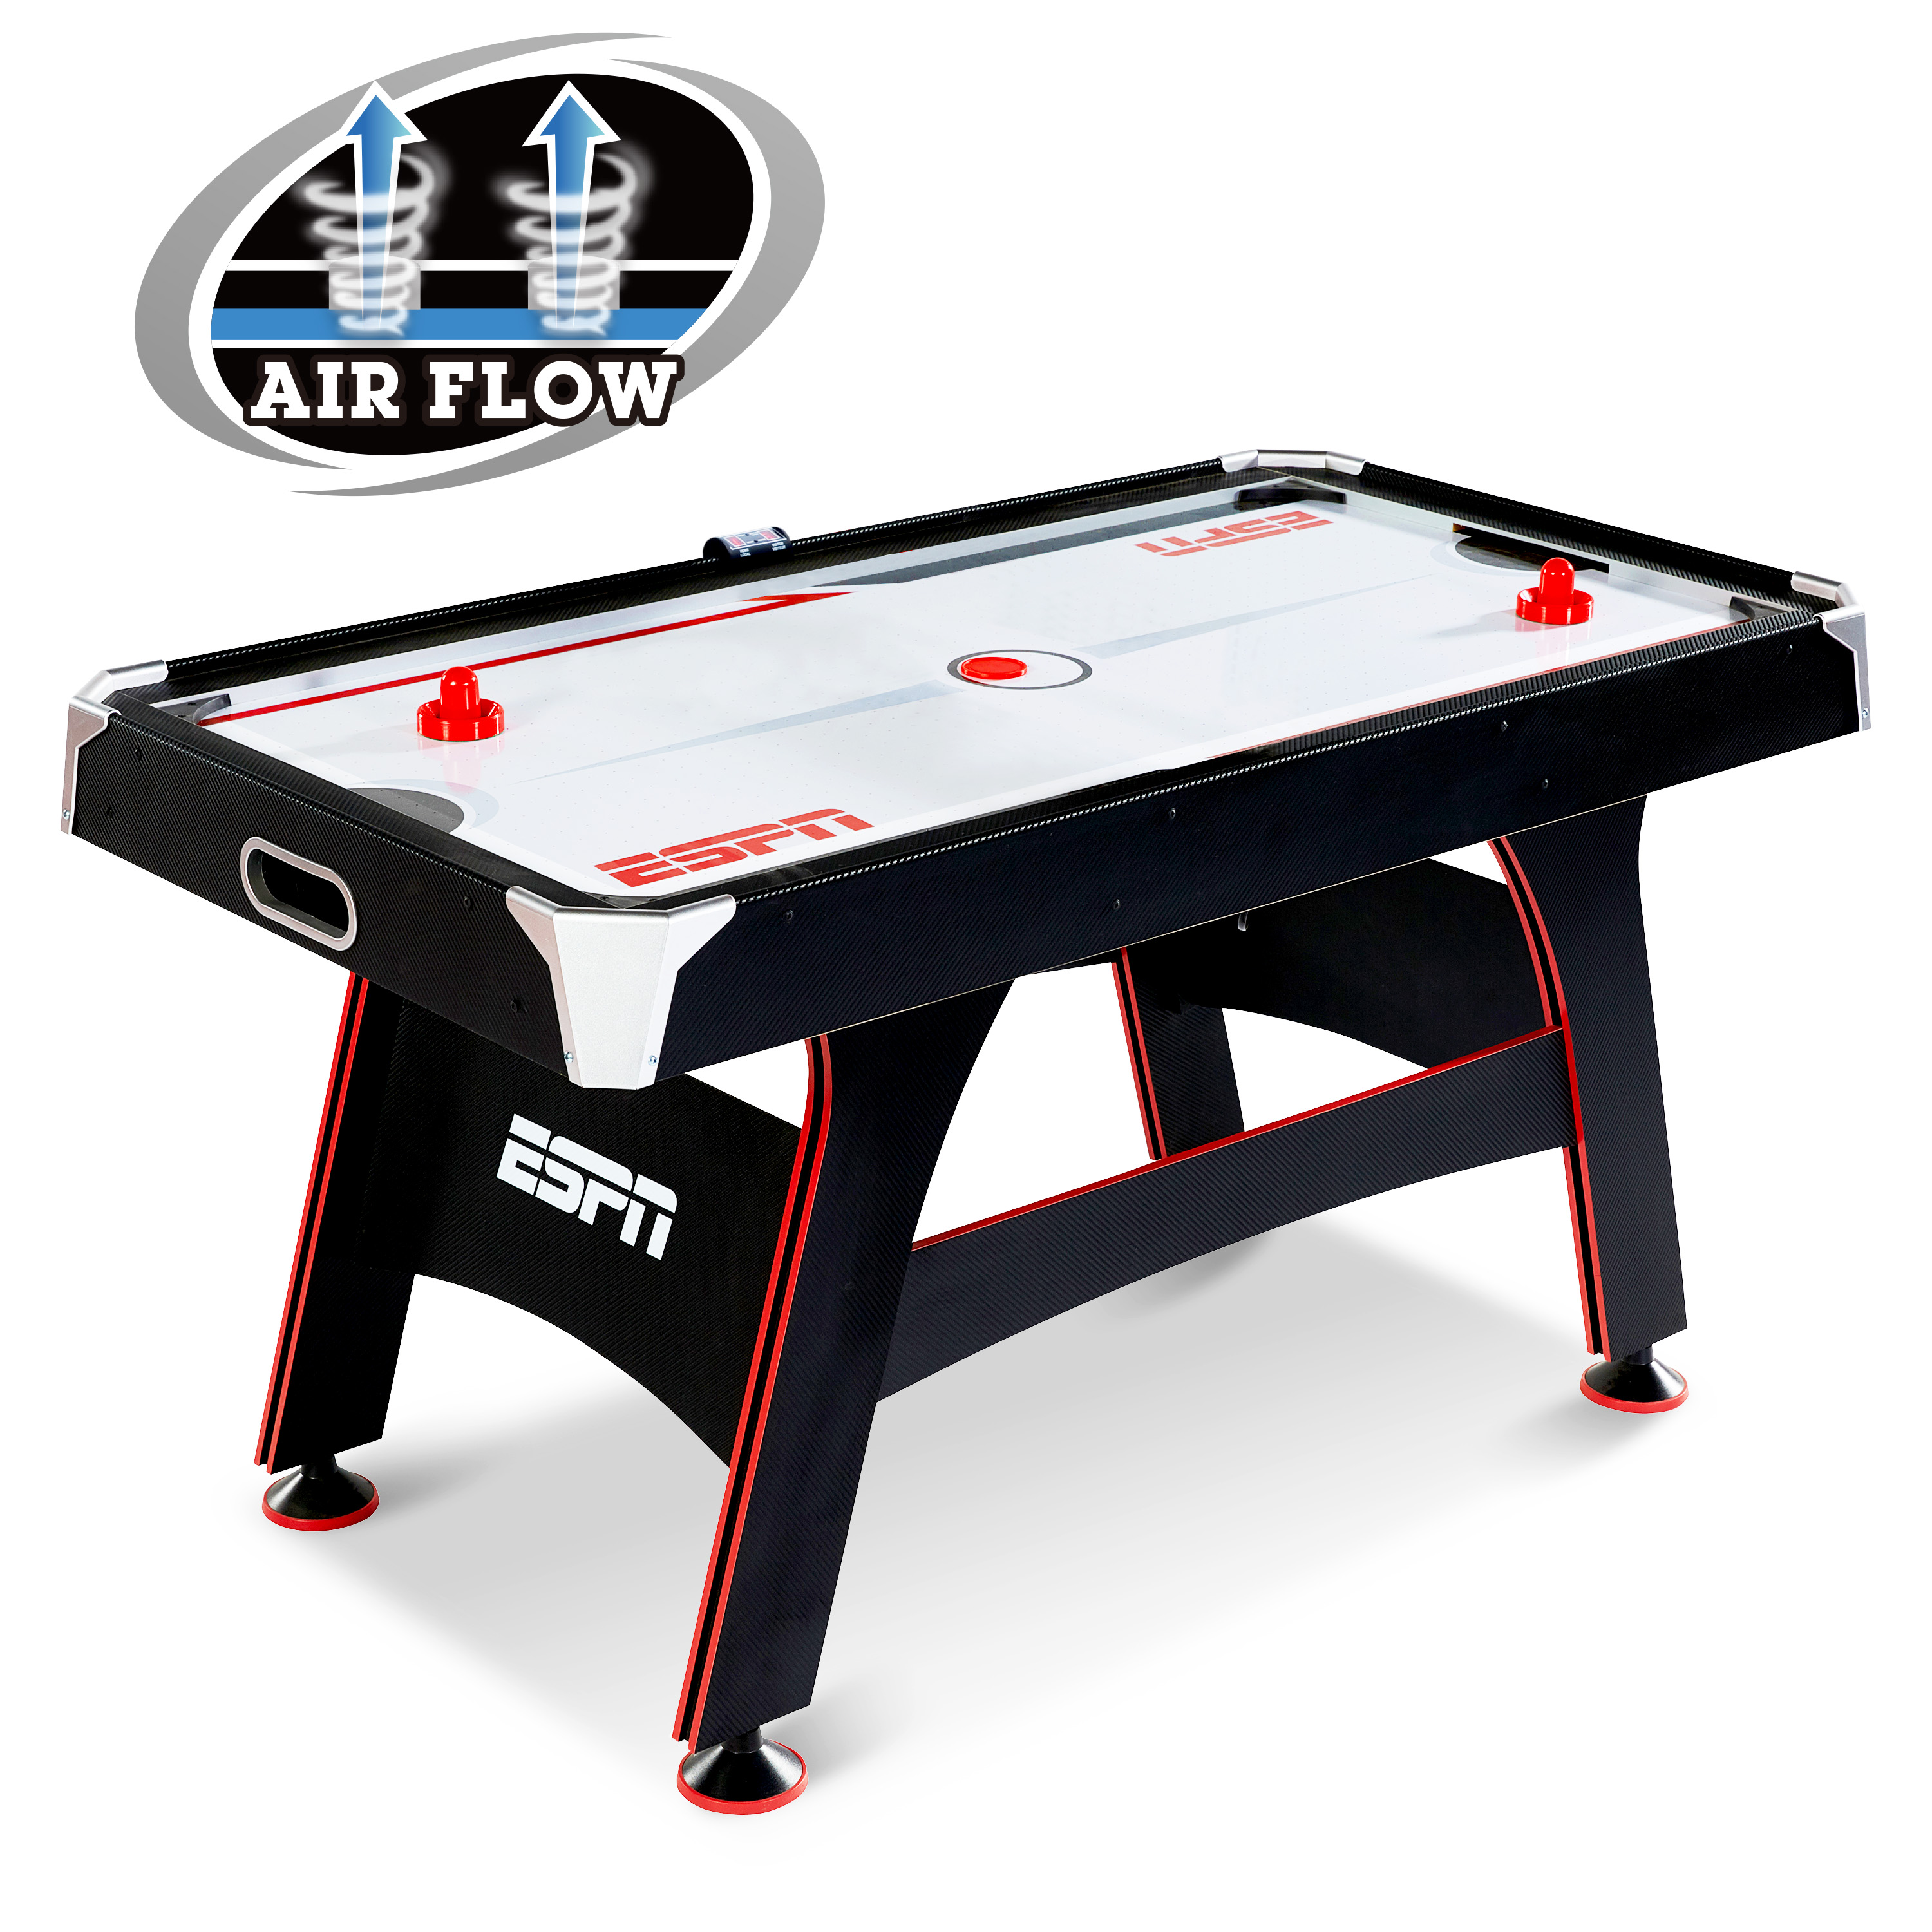 ESPN 5 FT. AIR POWERED HOCKEY TABLE WITH LED ELECTRONIC SCORER by Medal Sports